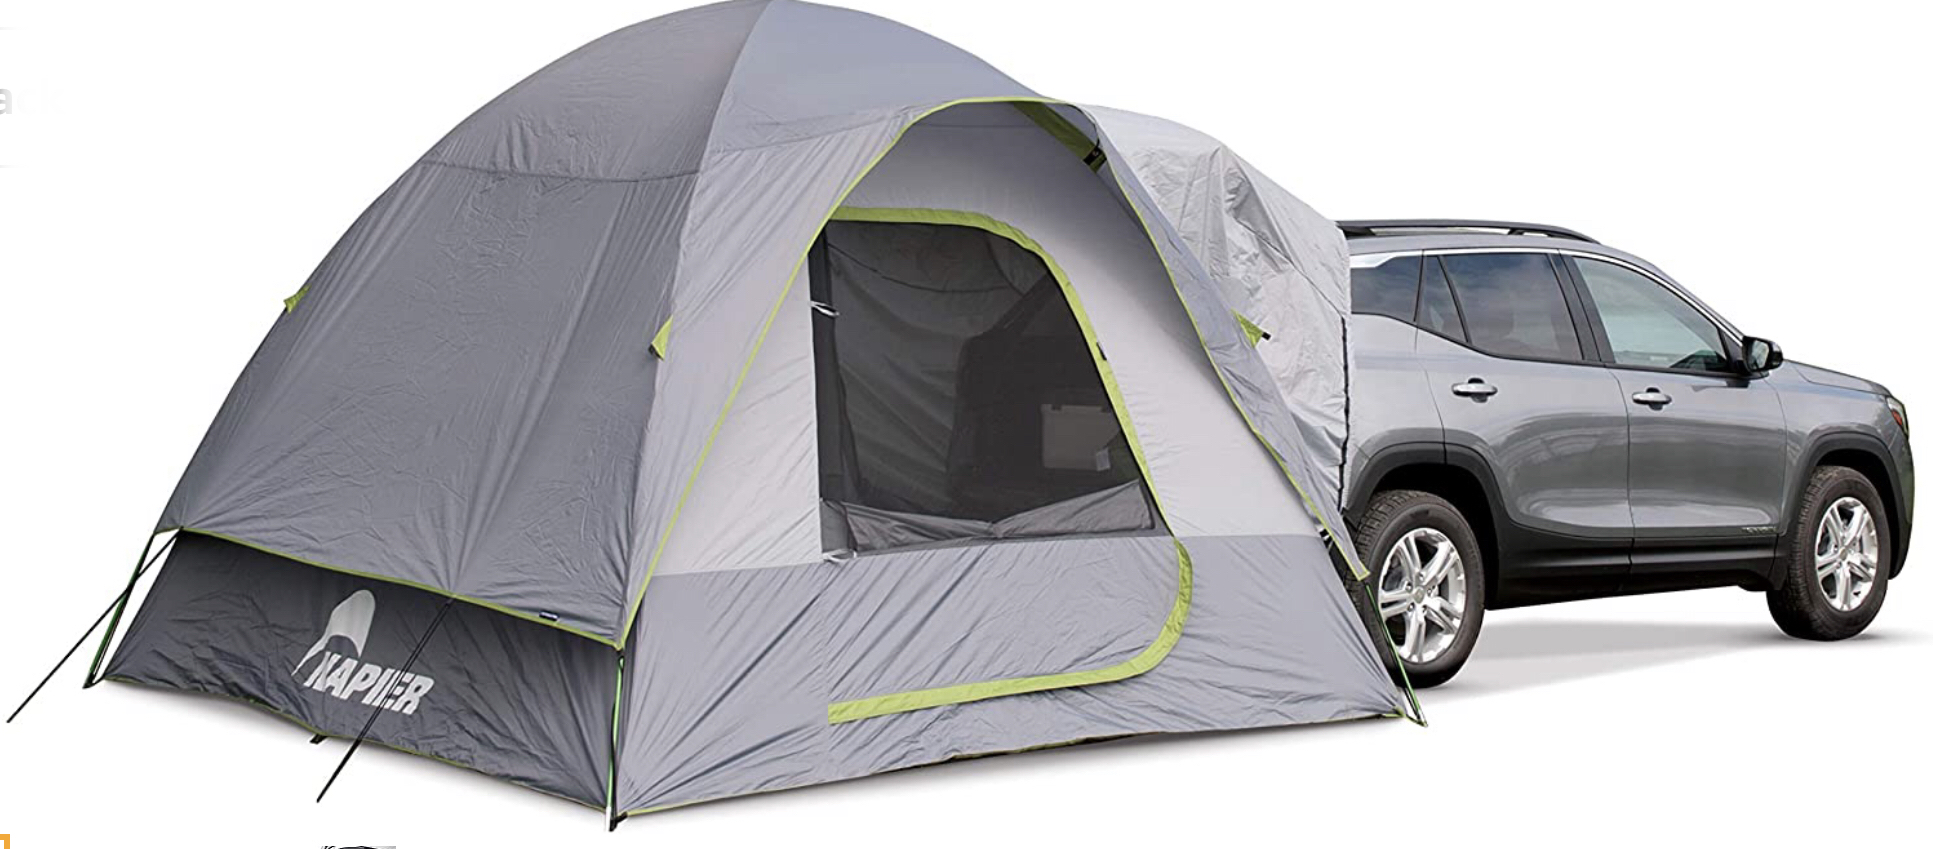 The Complete Guide to Tents That Attach to Suvs 4